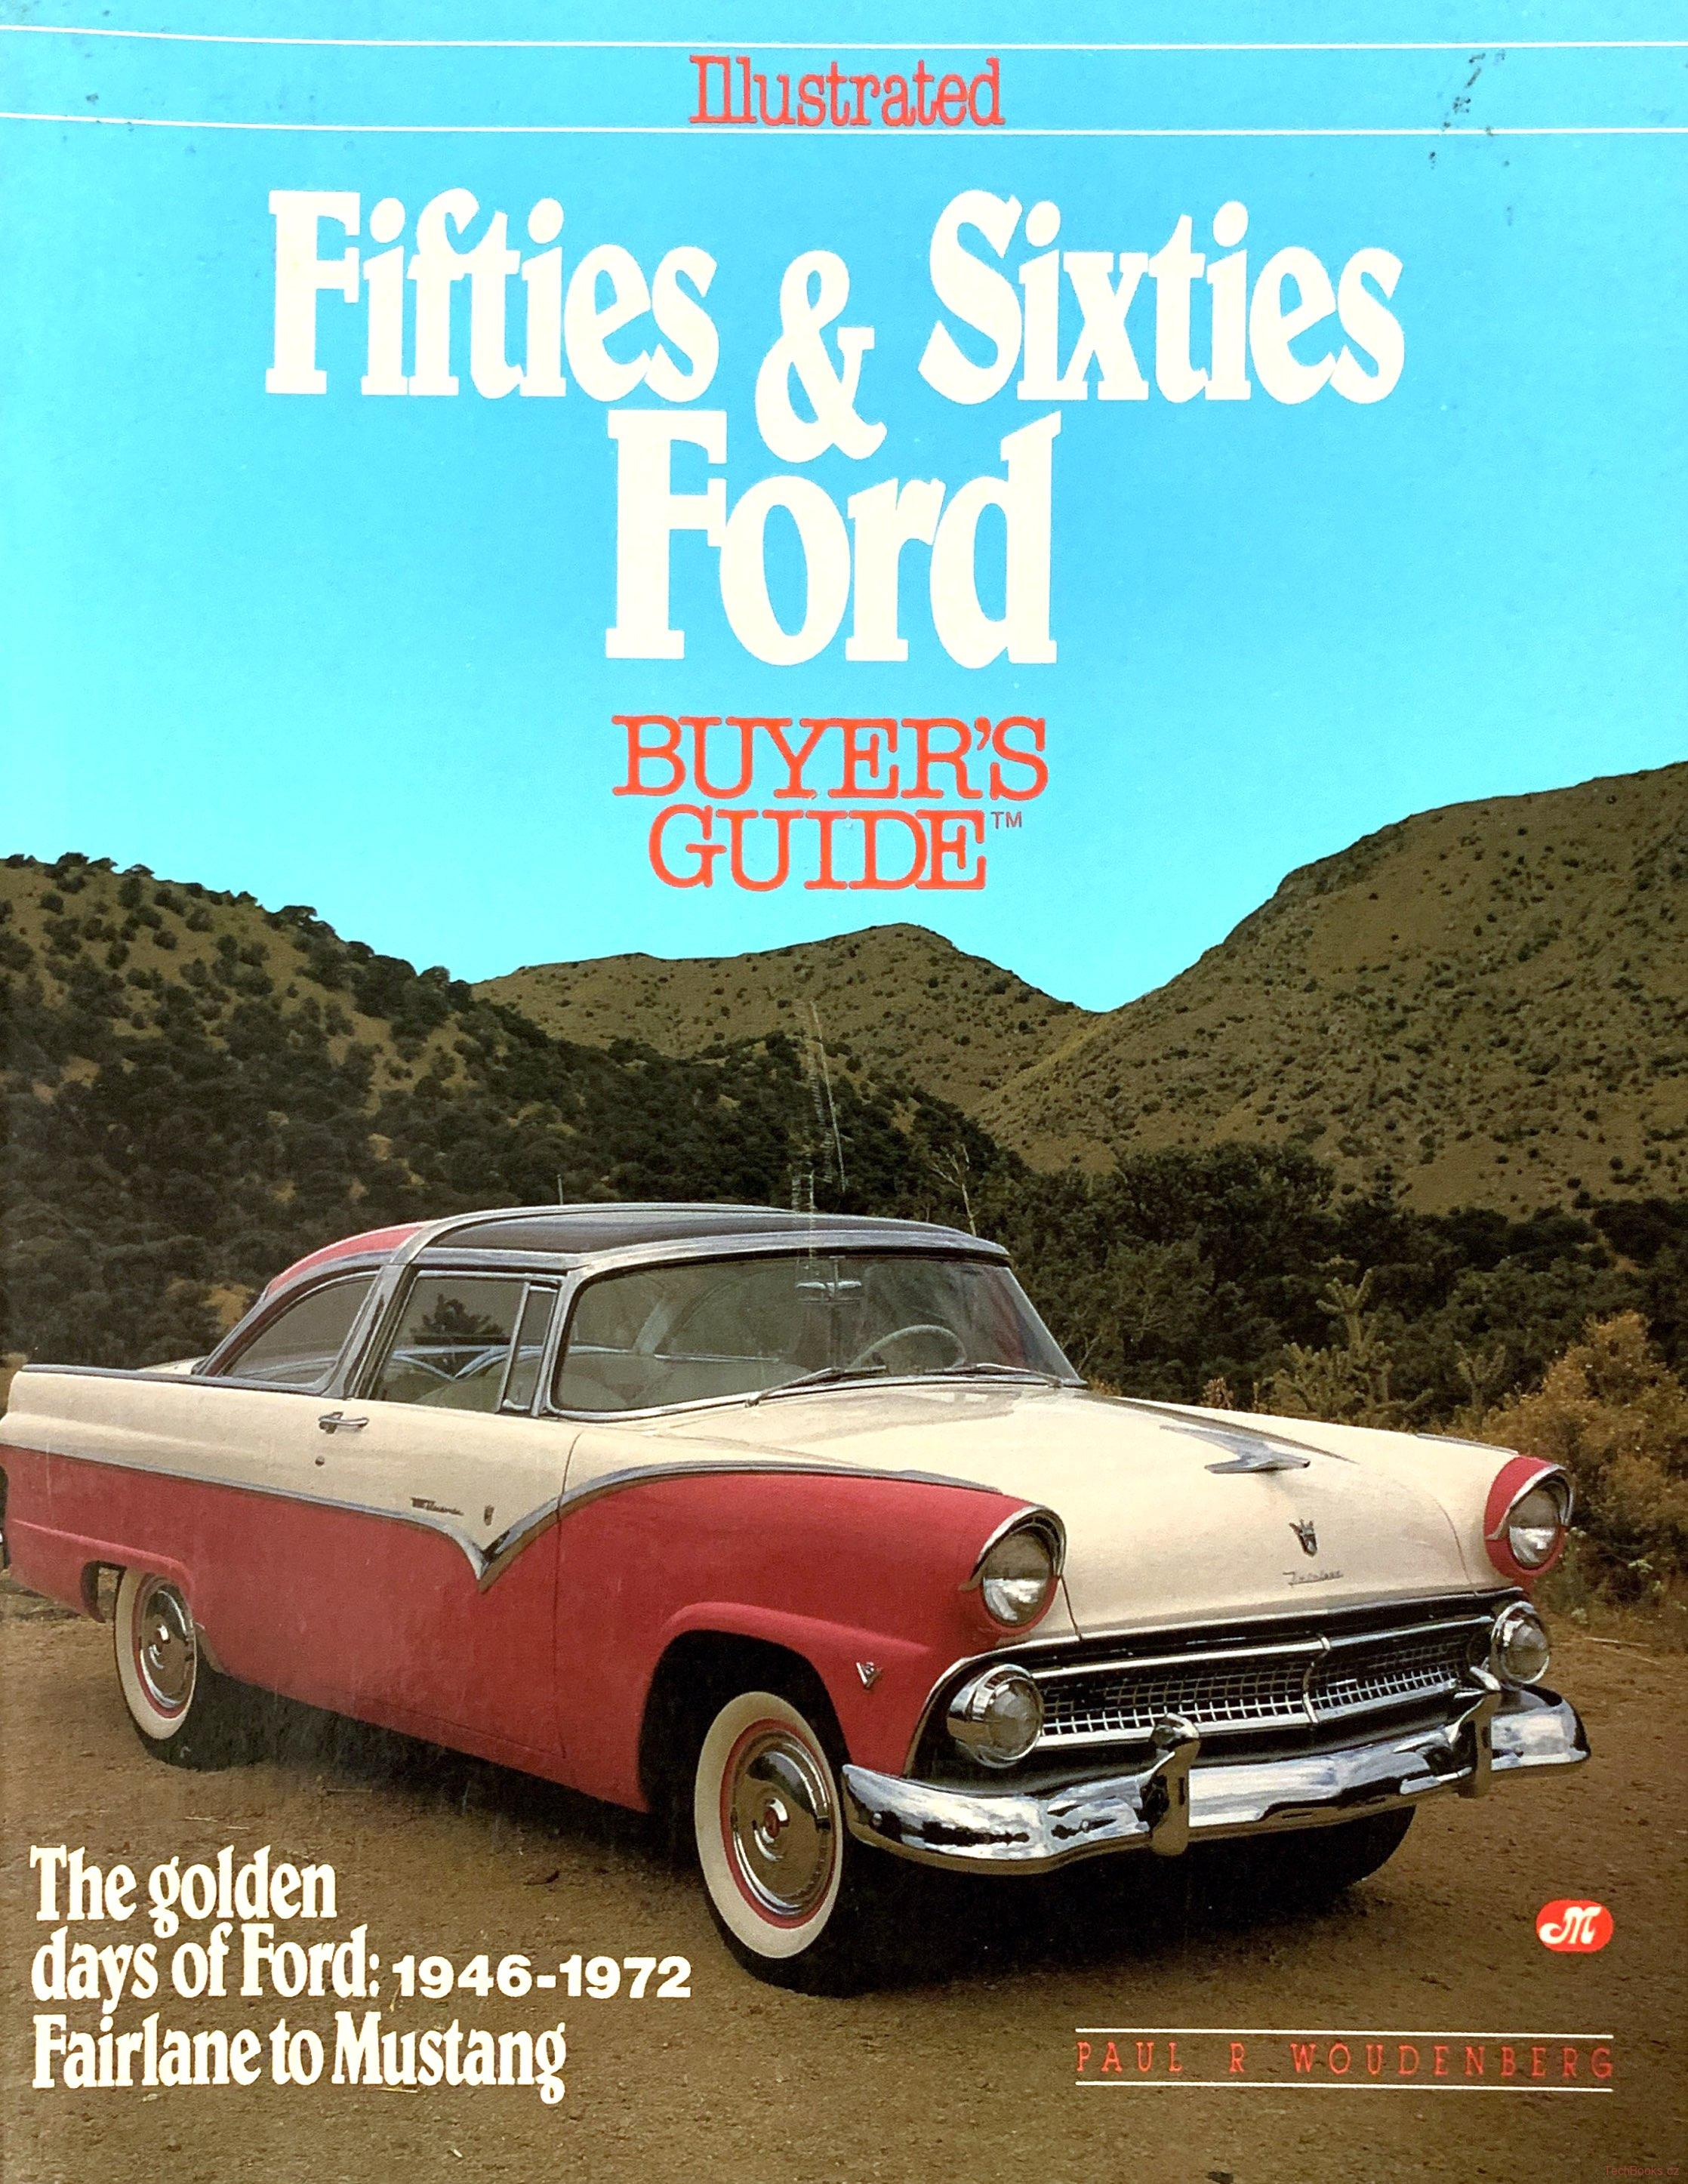 Fifties & Sixties Ford - Illustrated Buyer's Guide